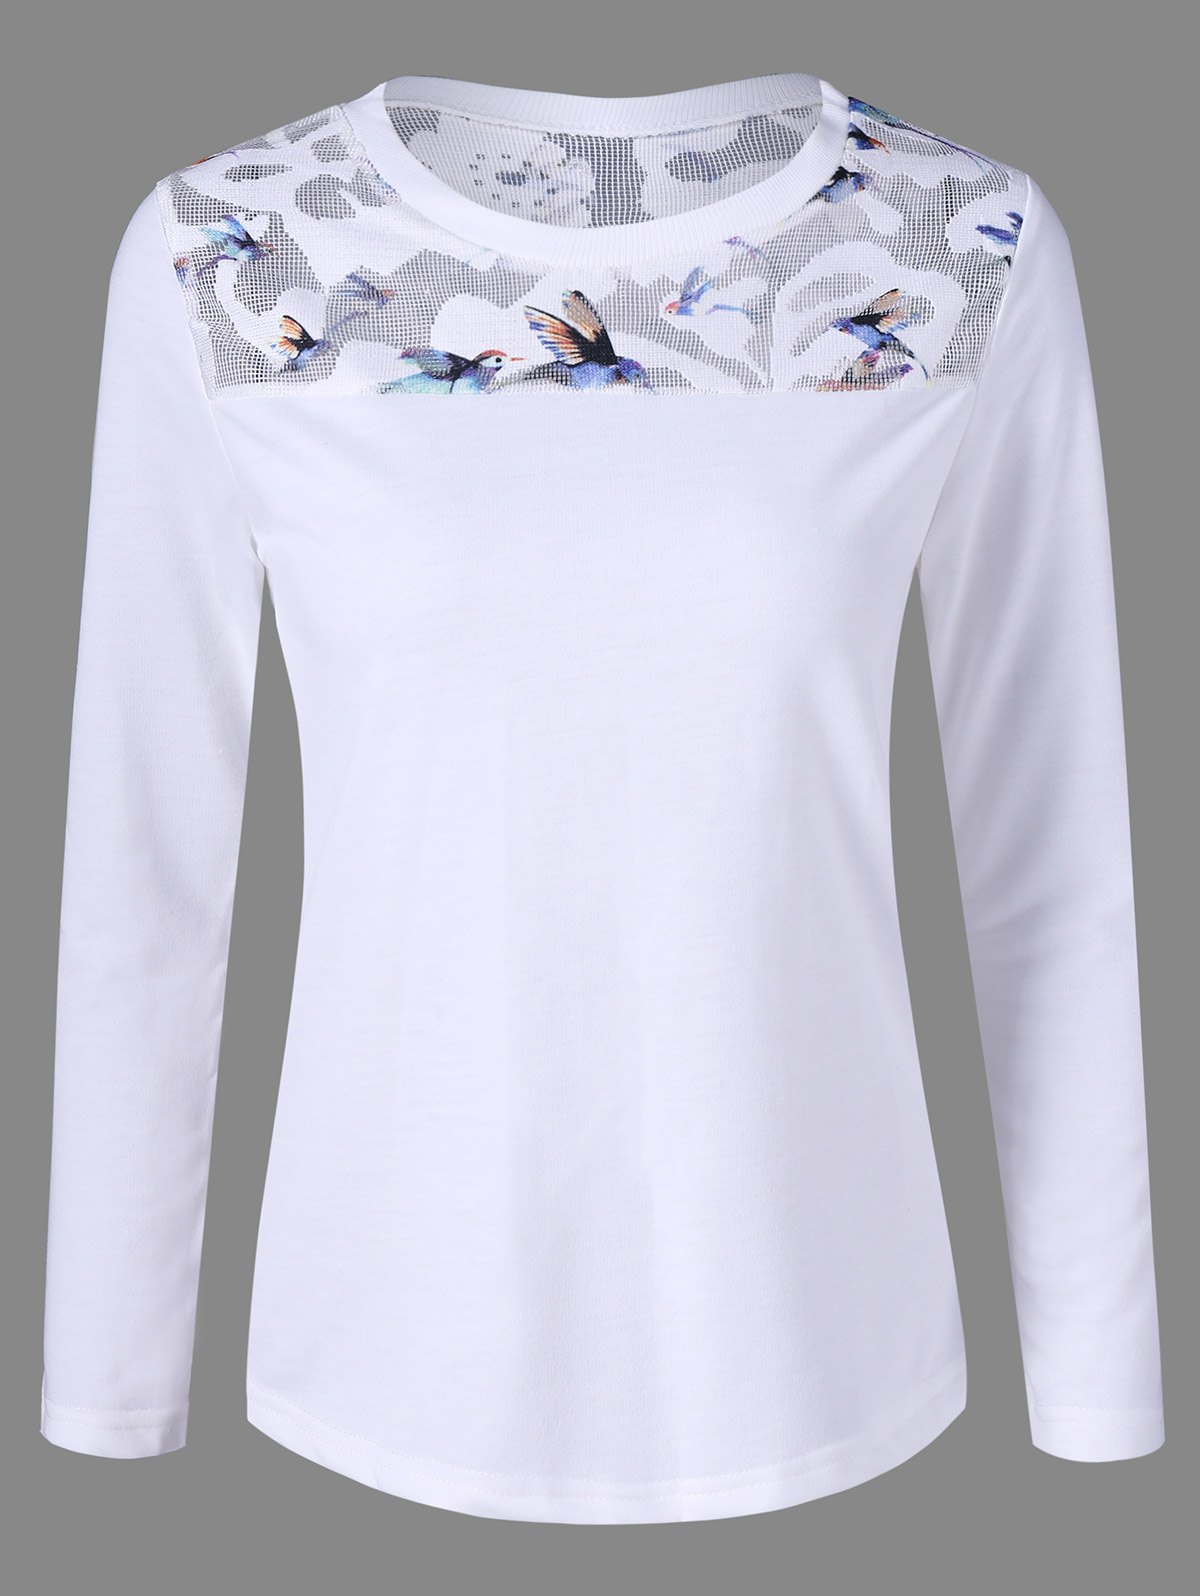 Birds Print TeeWomen<br><br><br>Size: ONE SIZE<br>Color: WHITE